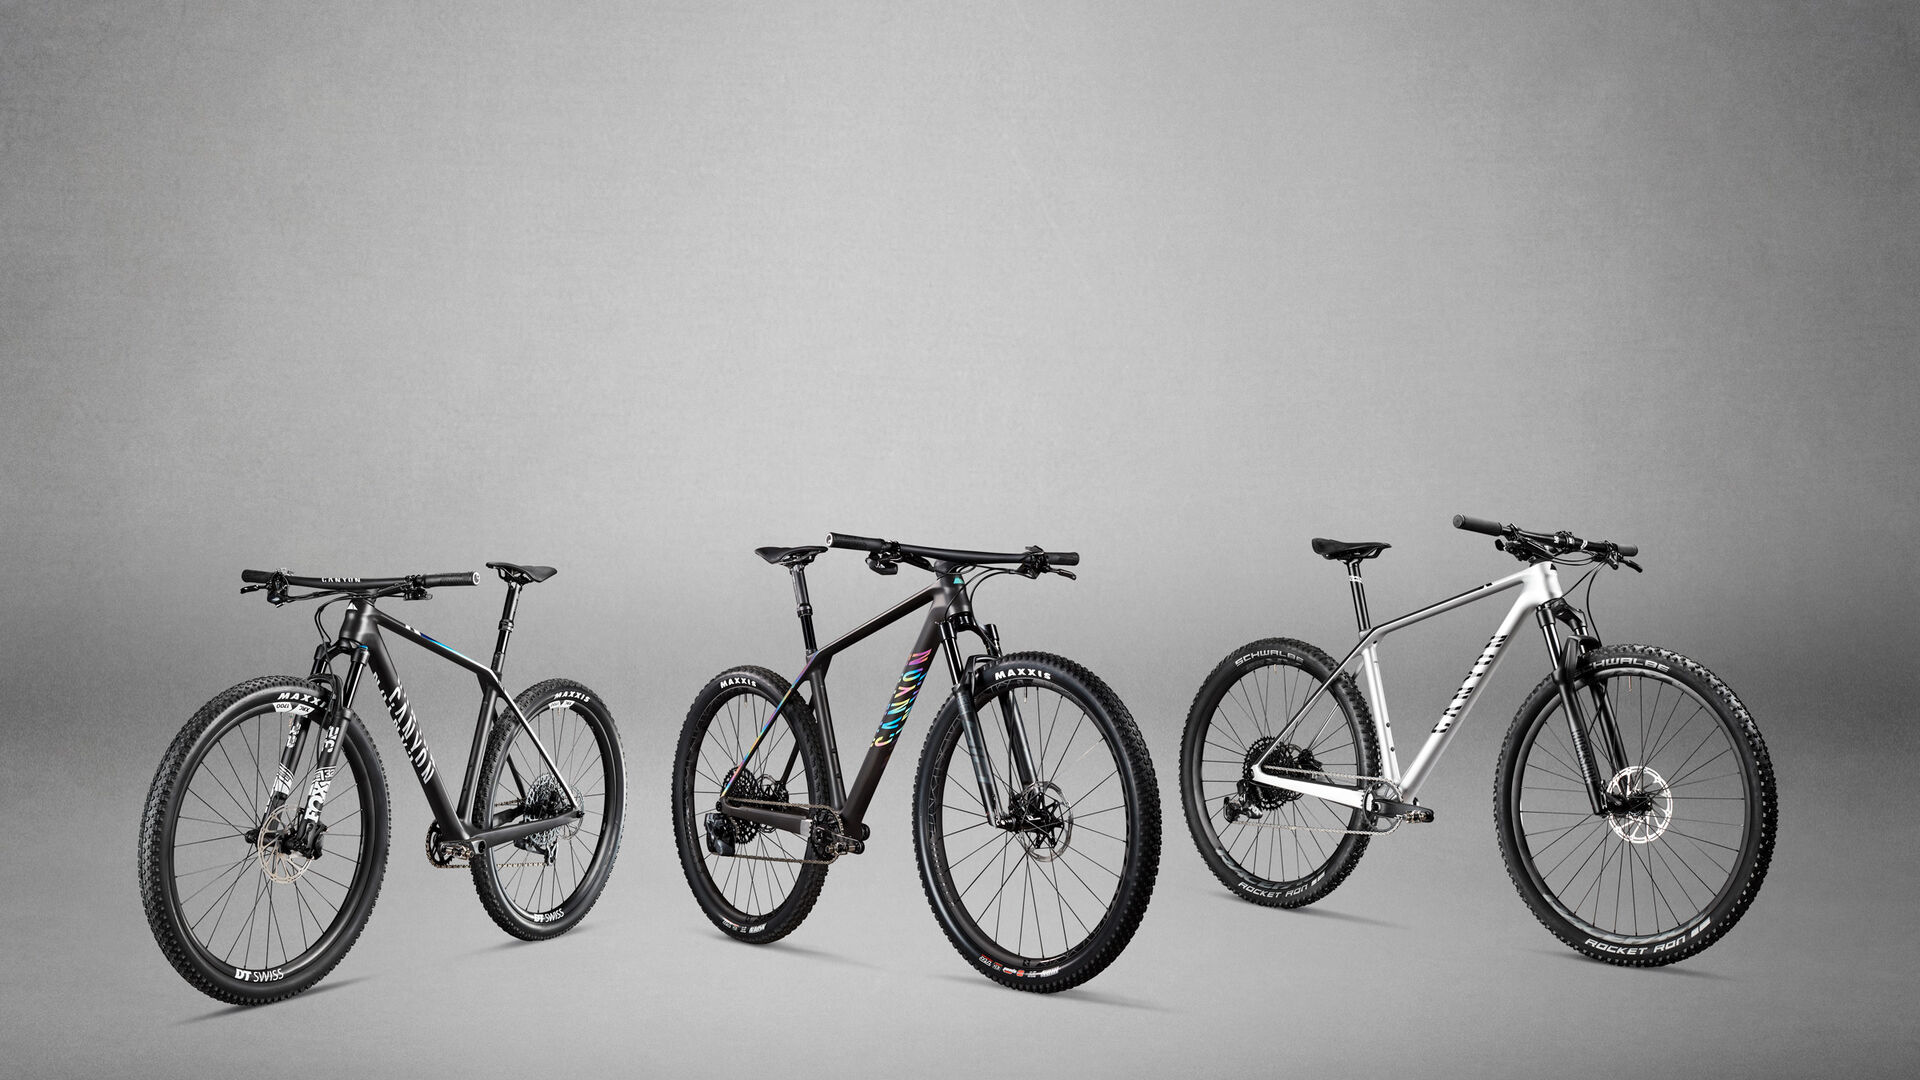 Canyon Exceed gravel bikes